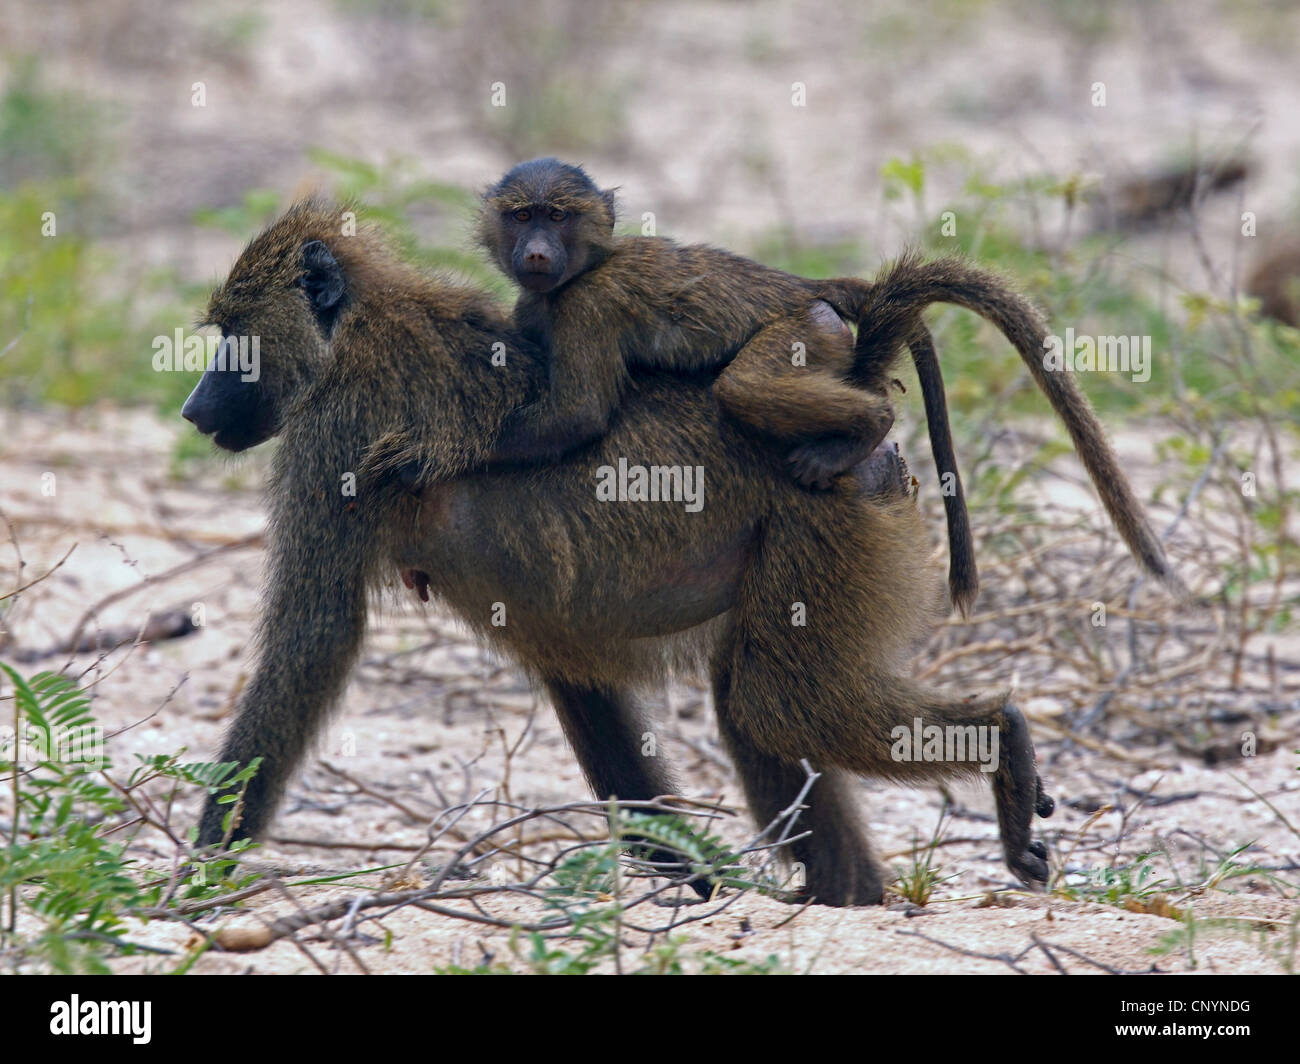 yellow baboon, savannah baboon (Papio cynocephalus), young baboon at the back of their mother, Tanzania, Lake Manyara - Stock Image